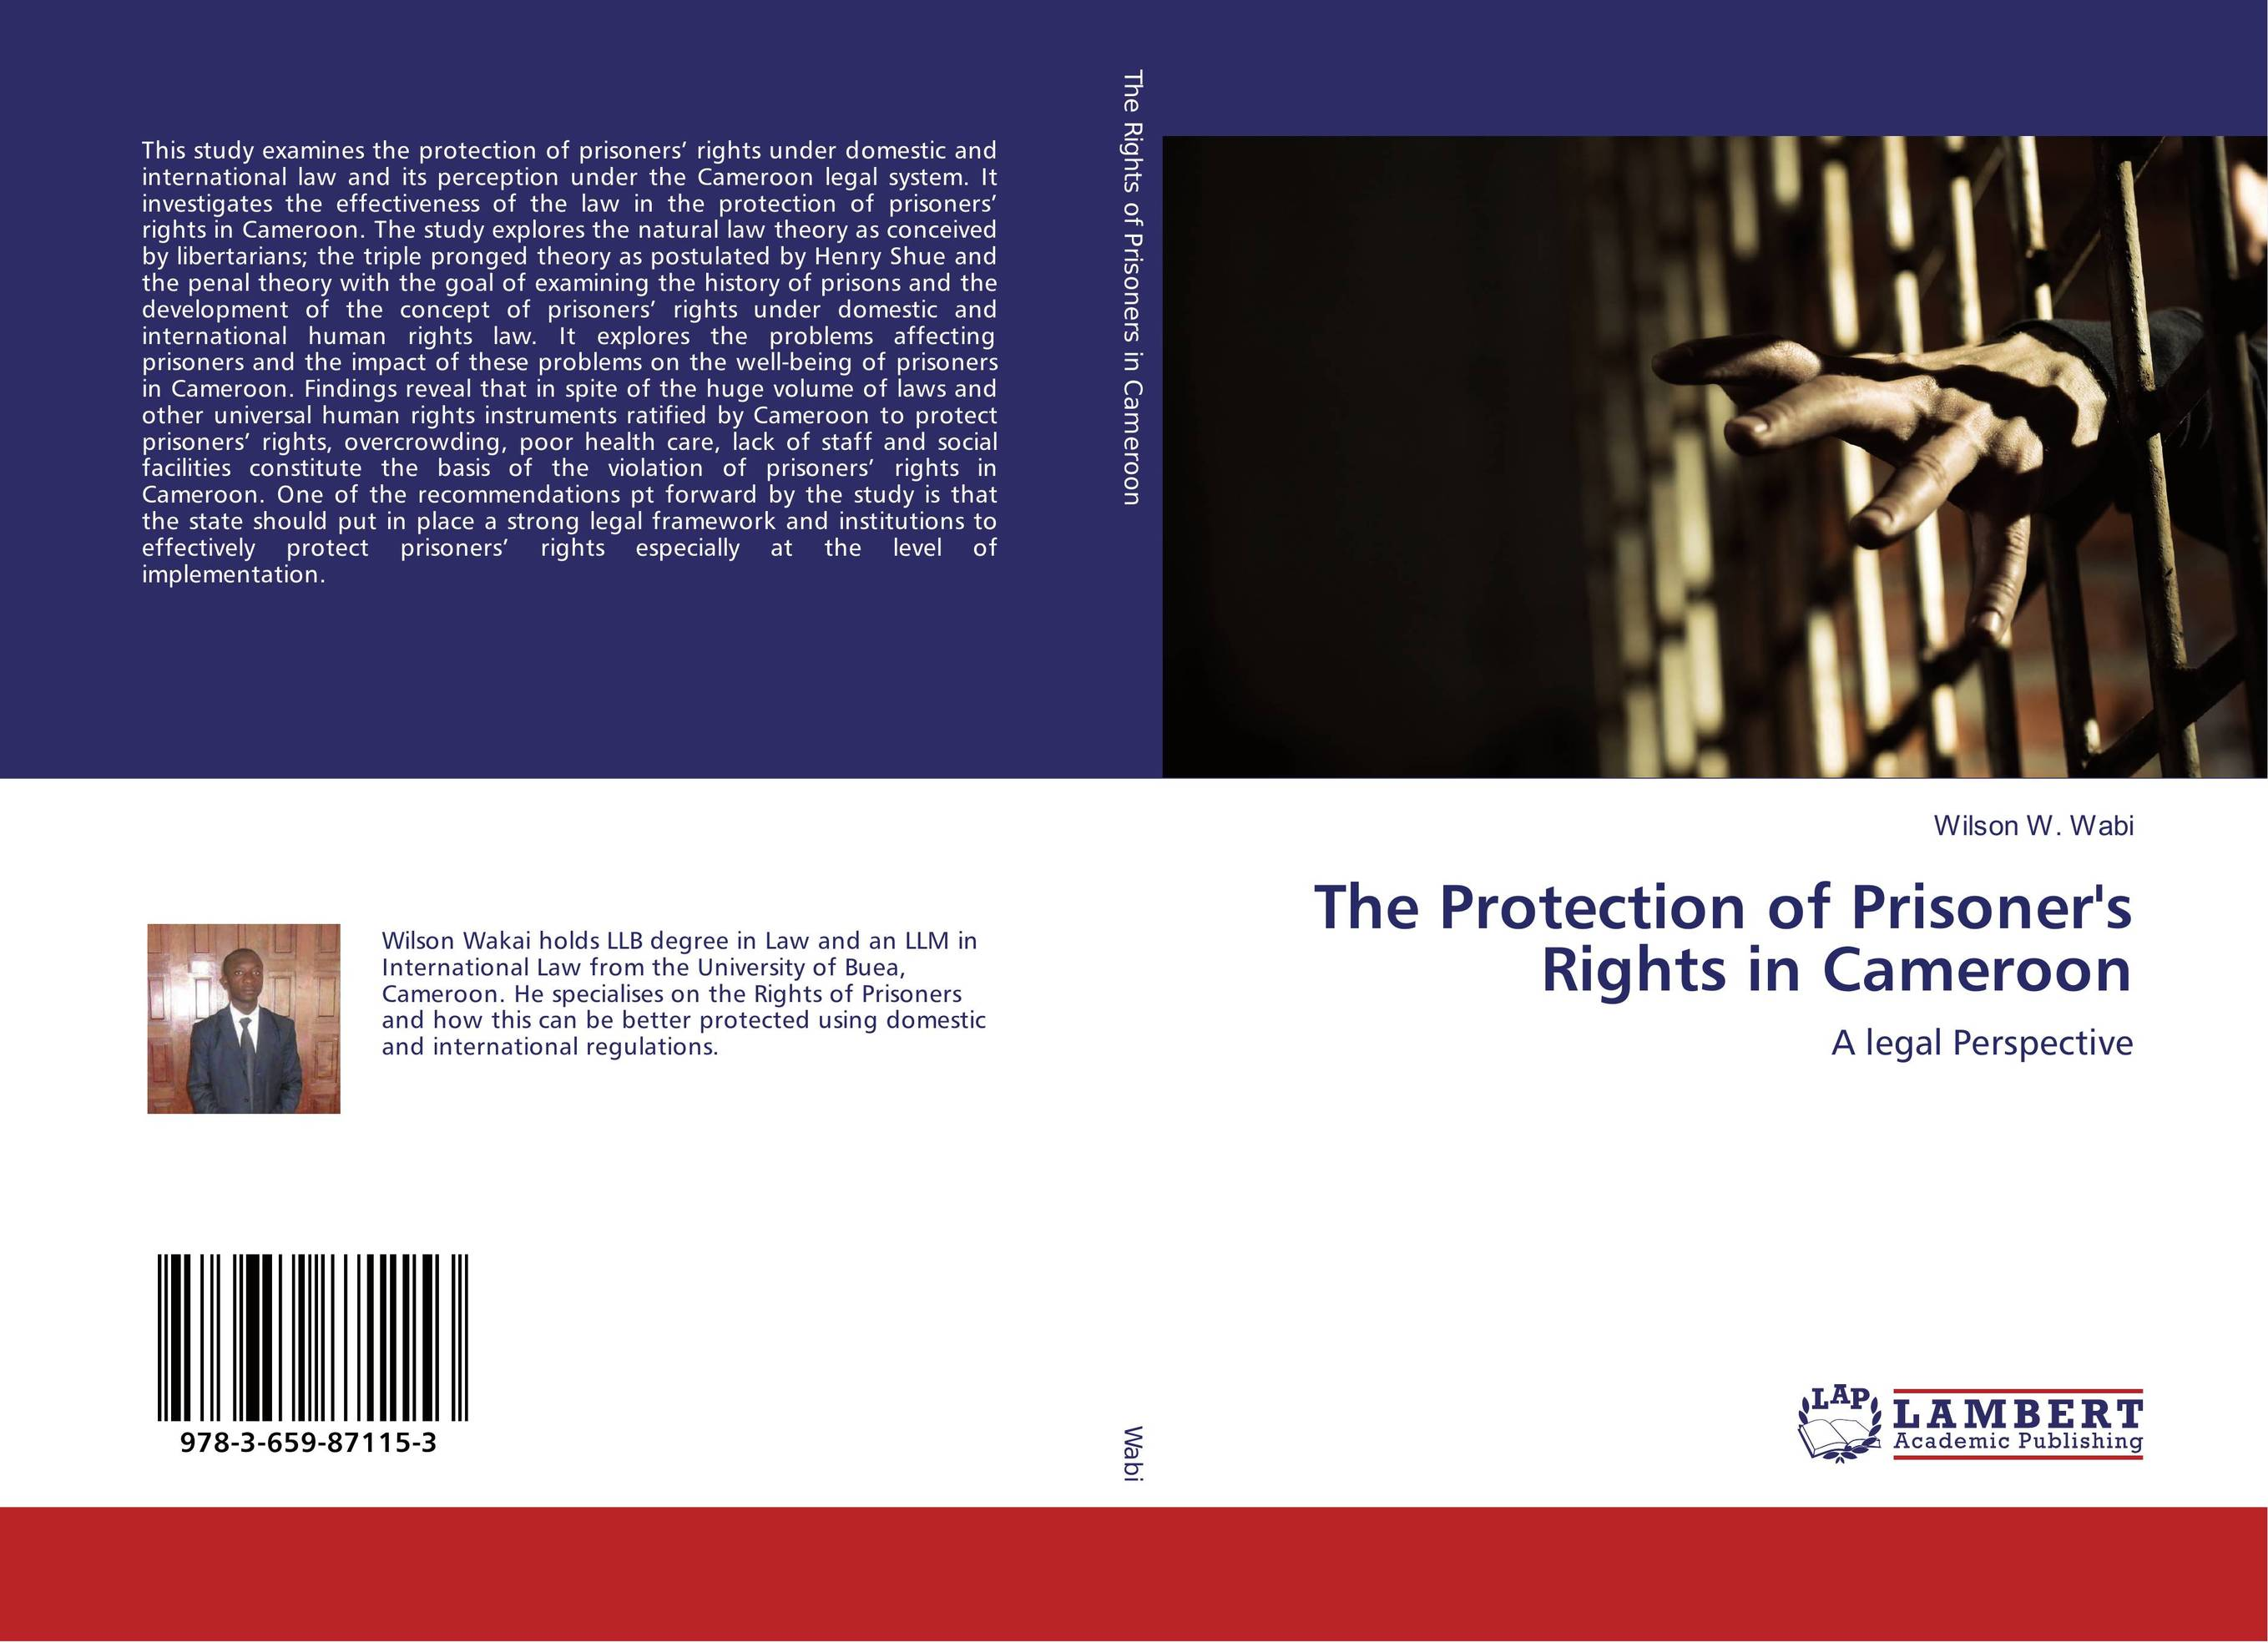 The Protection of Prisoner's Rights in Cameroon